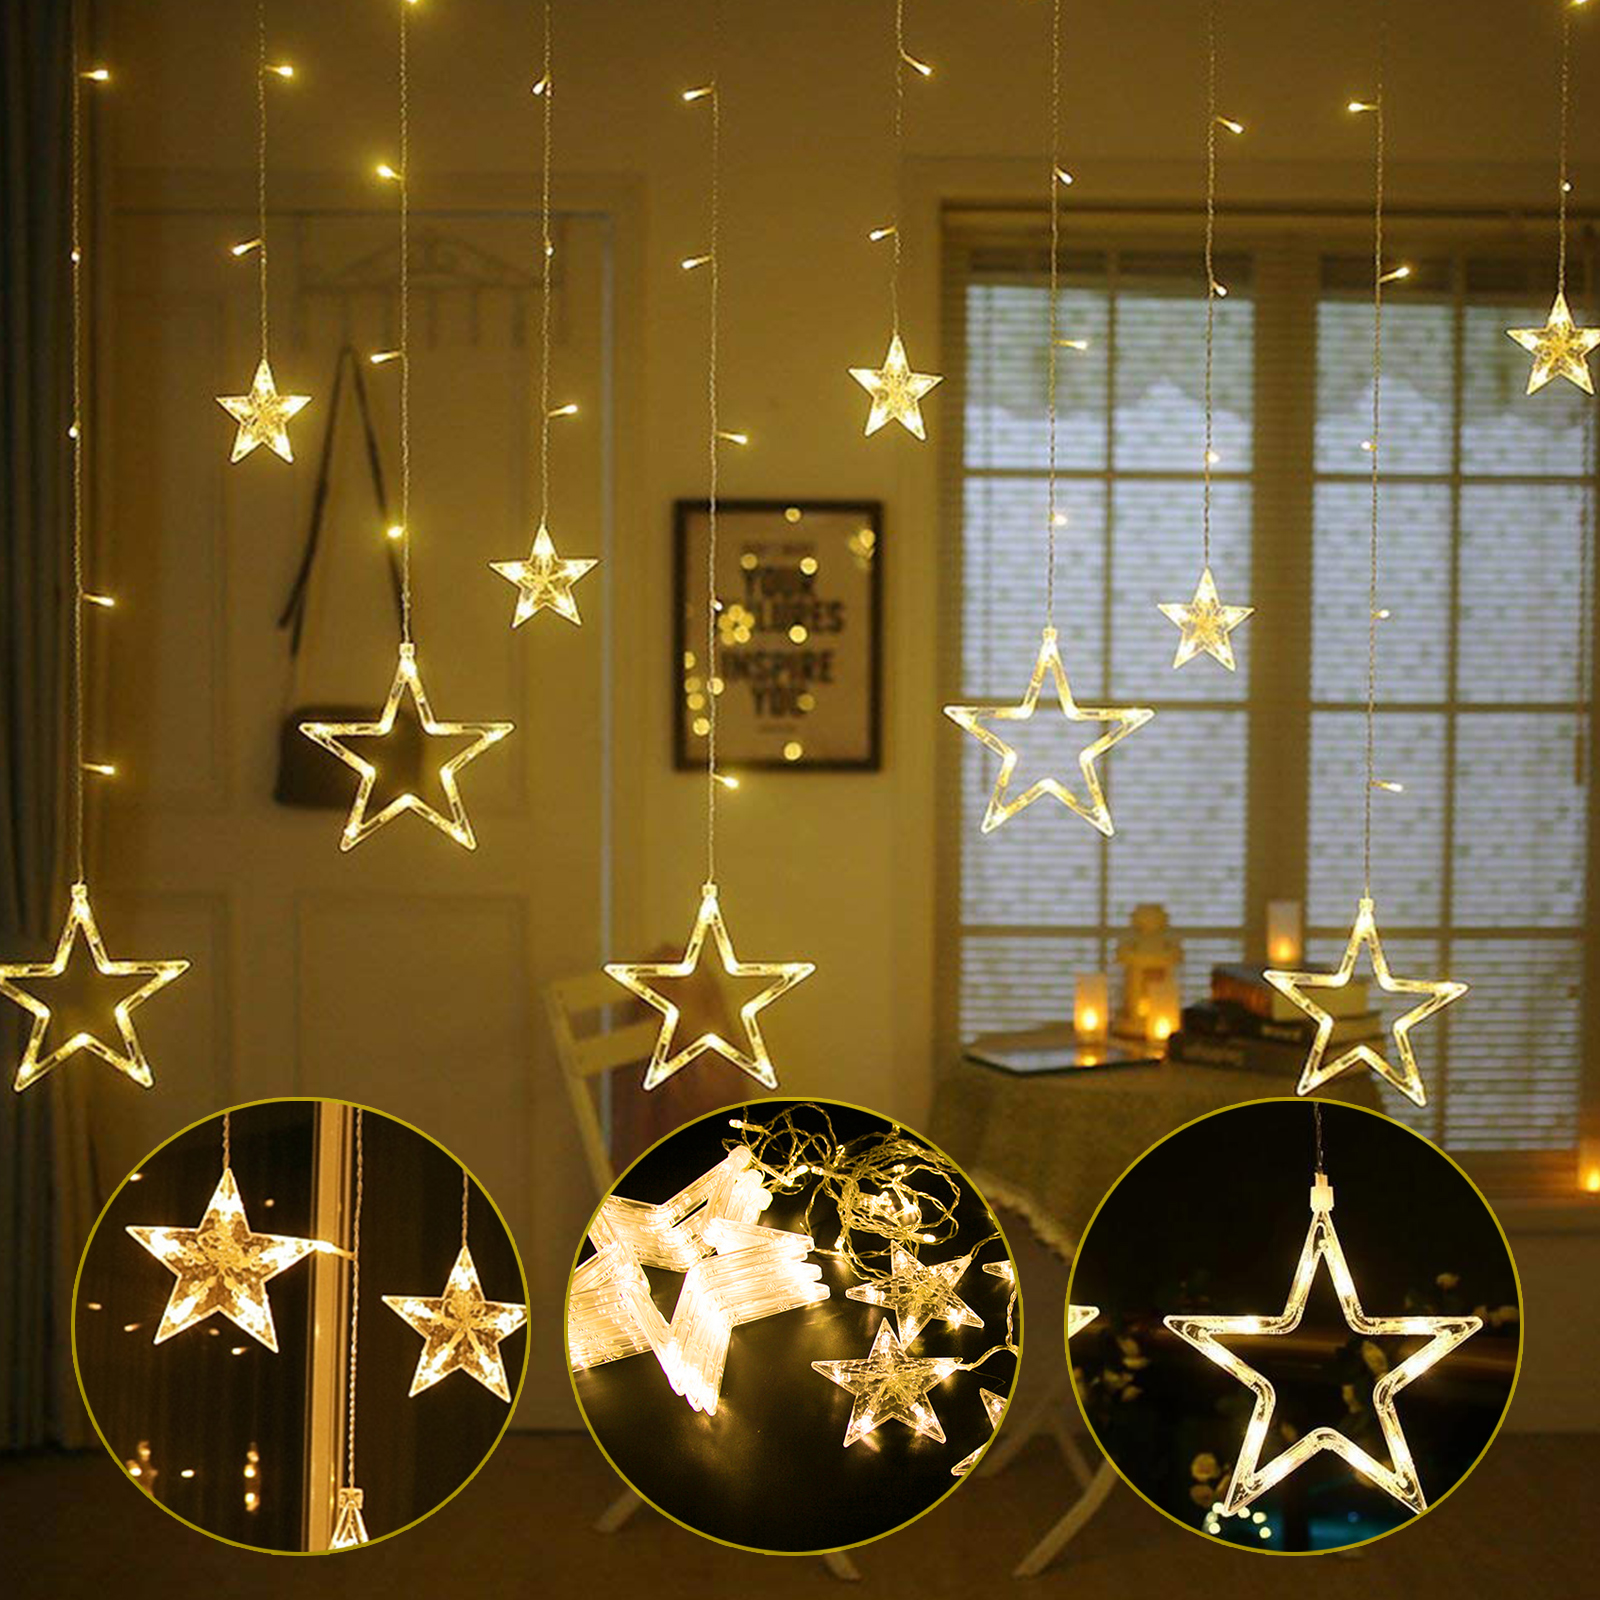 Stars Room Decor Led Star Curtain String Lights 12 Stars Window Xmas Christmas Wedding Room Décor